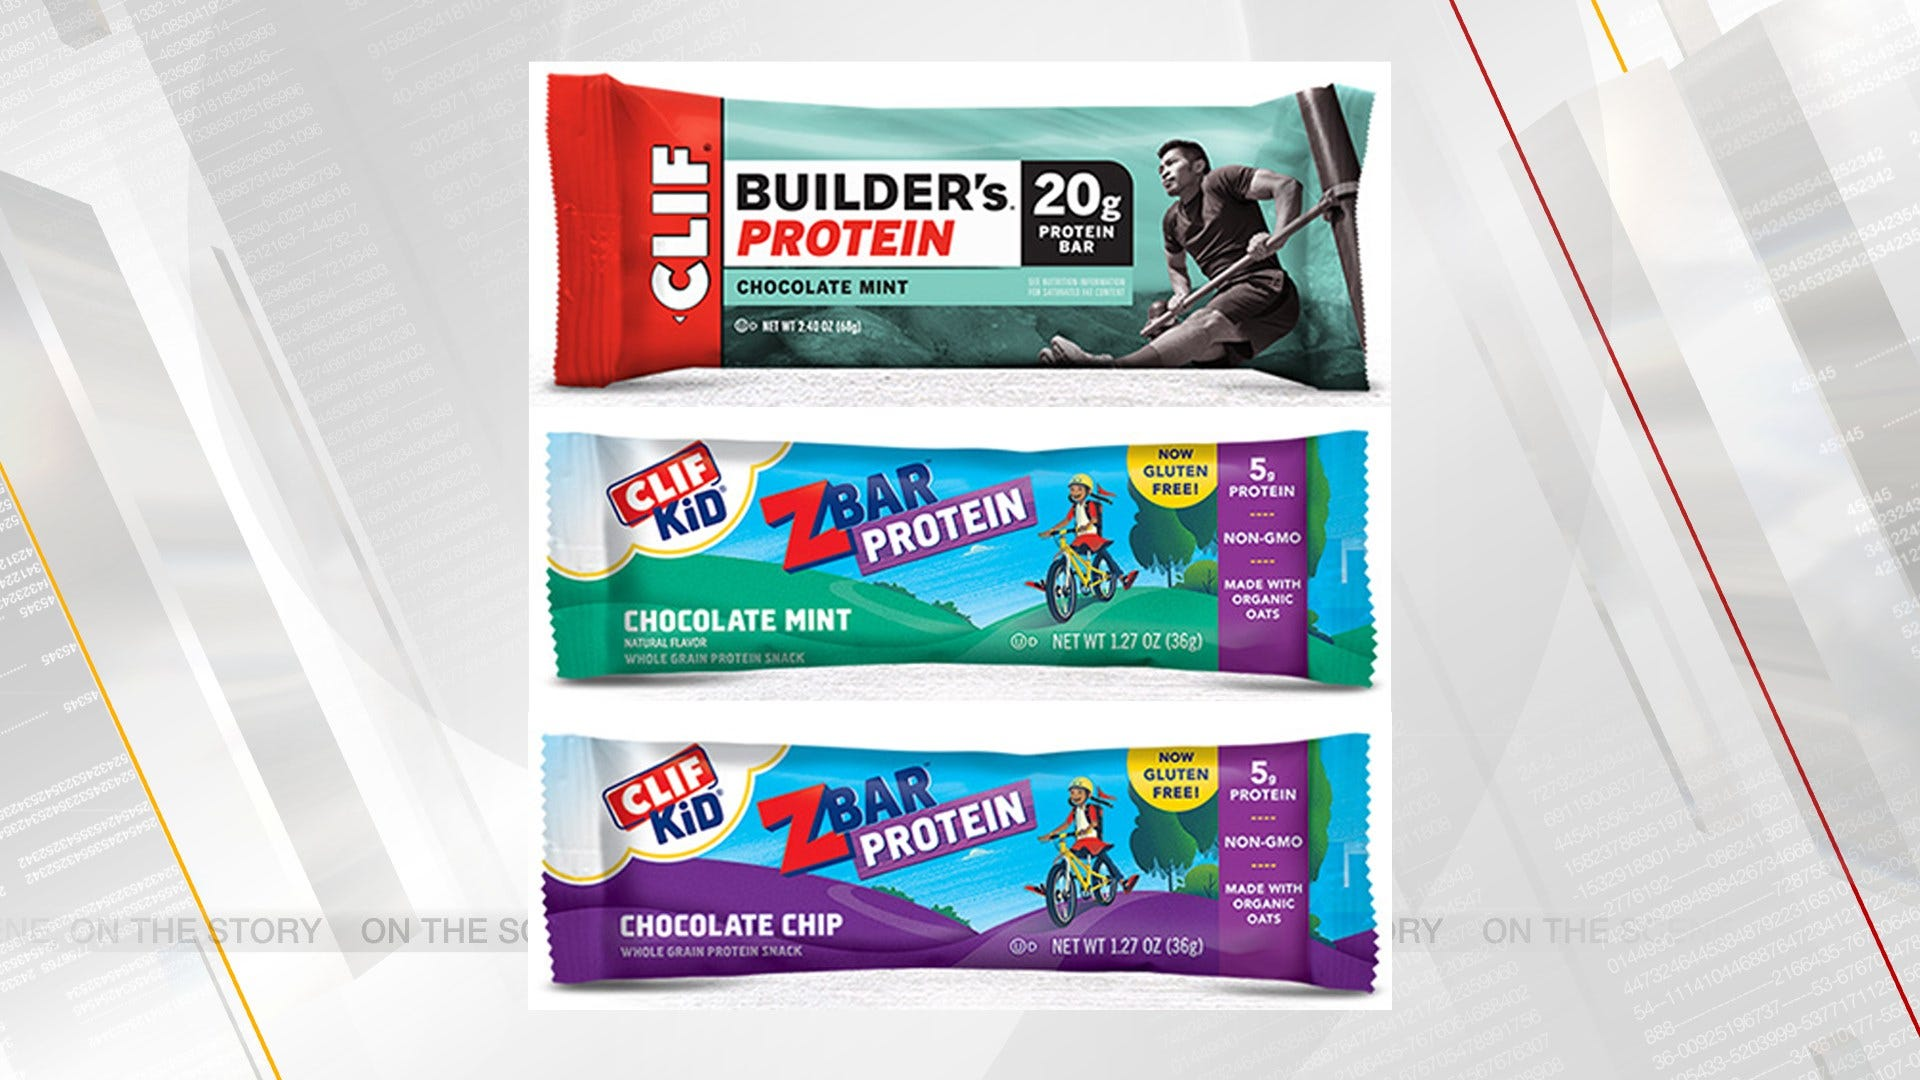 Clif Bar Recalls Some Products After Nut Allergy Reports